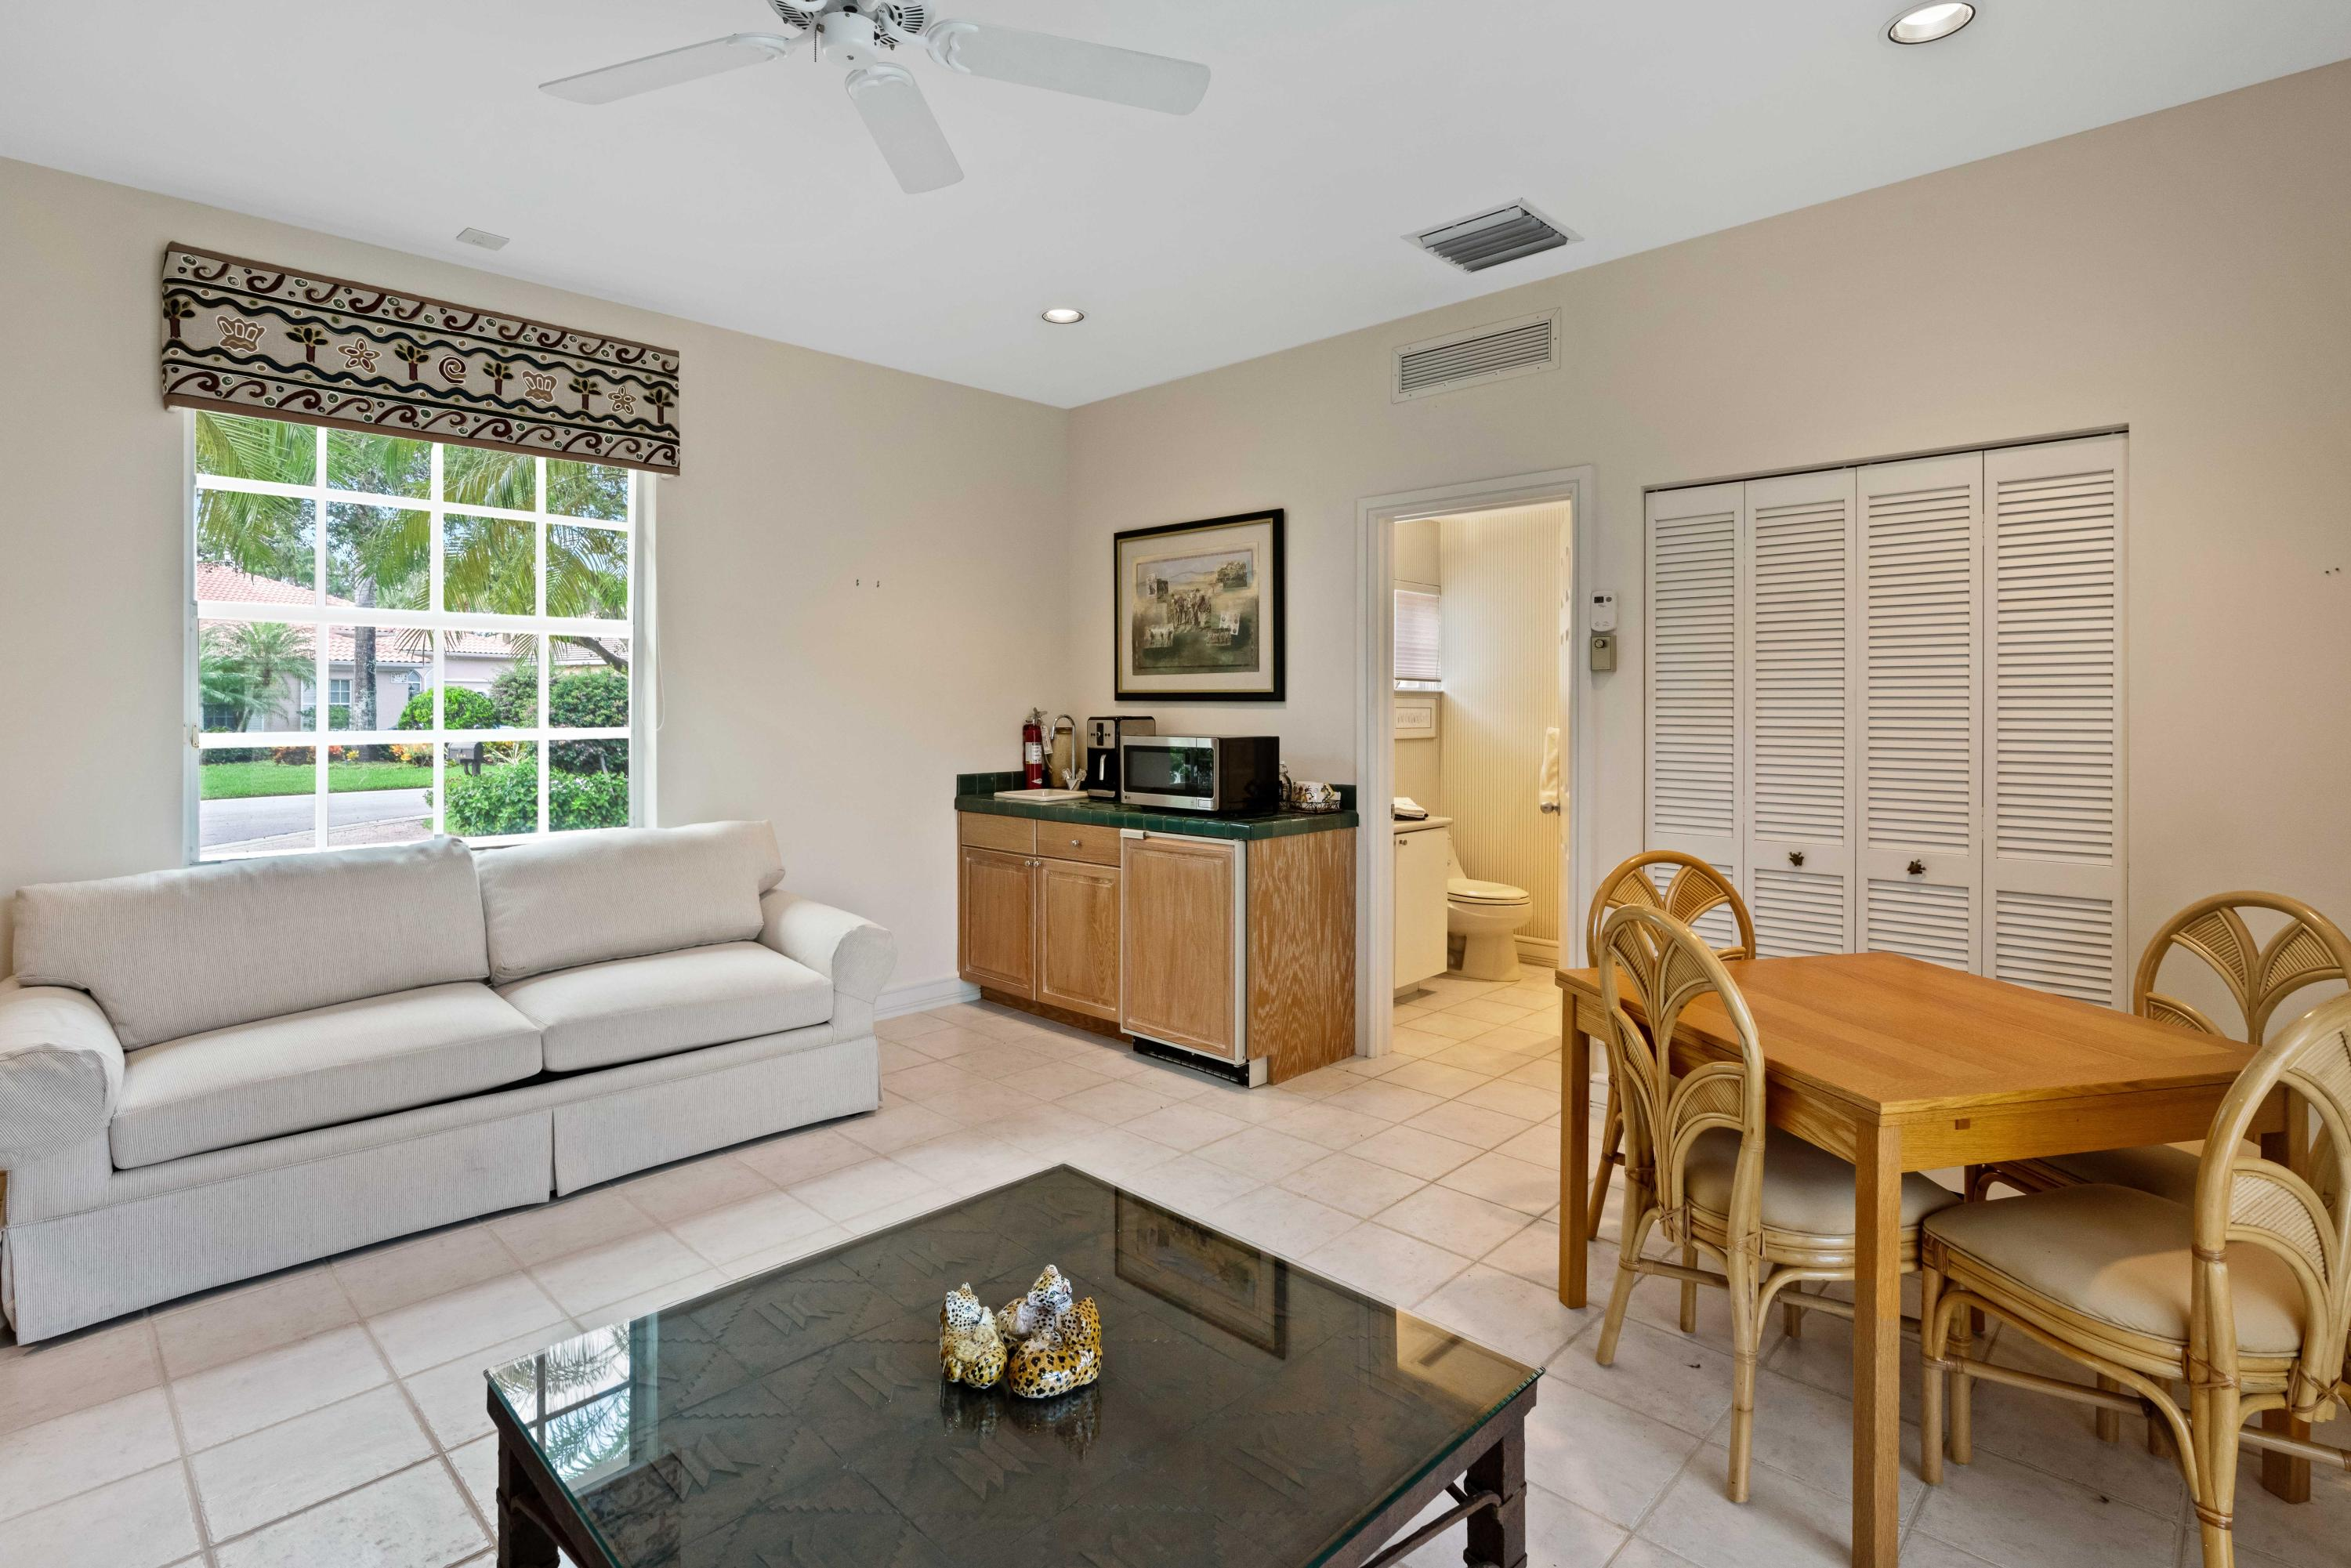 144 Village Way, Jupiter, Florida 33458, 3 Bedrooms Bedrooms, ,3.1 BathroomsBathrooms,A,Single family,Village,RX-10484573